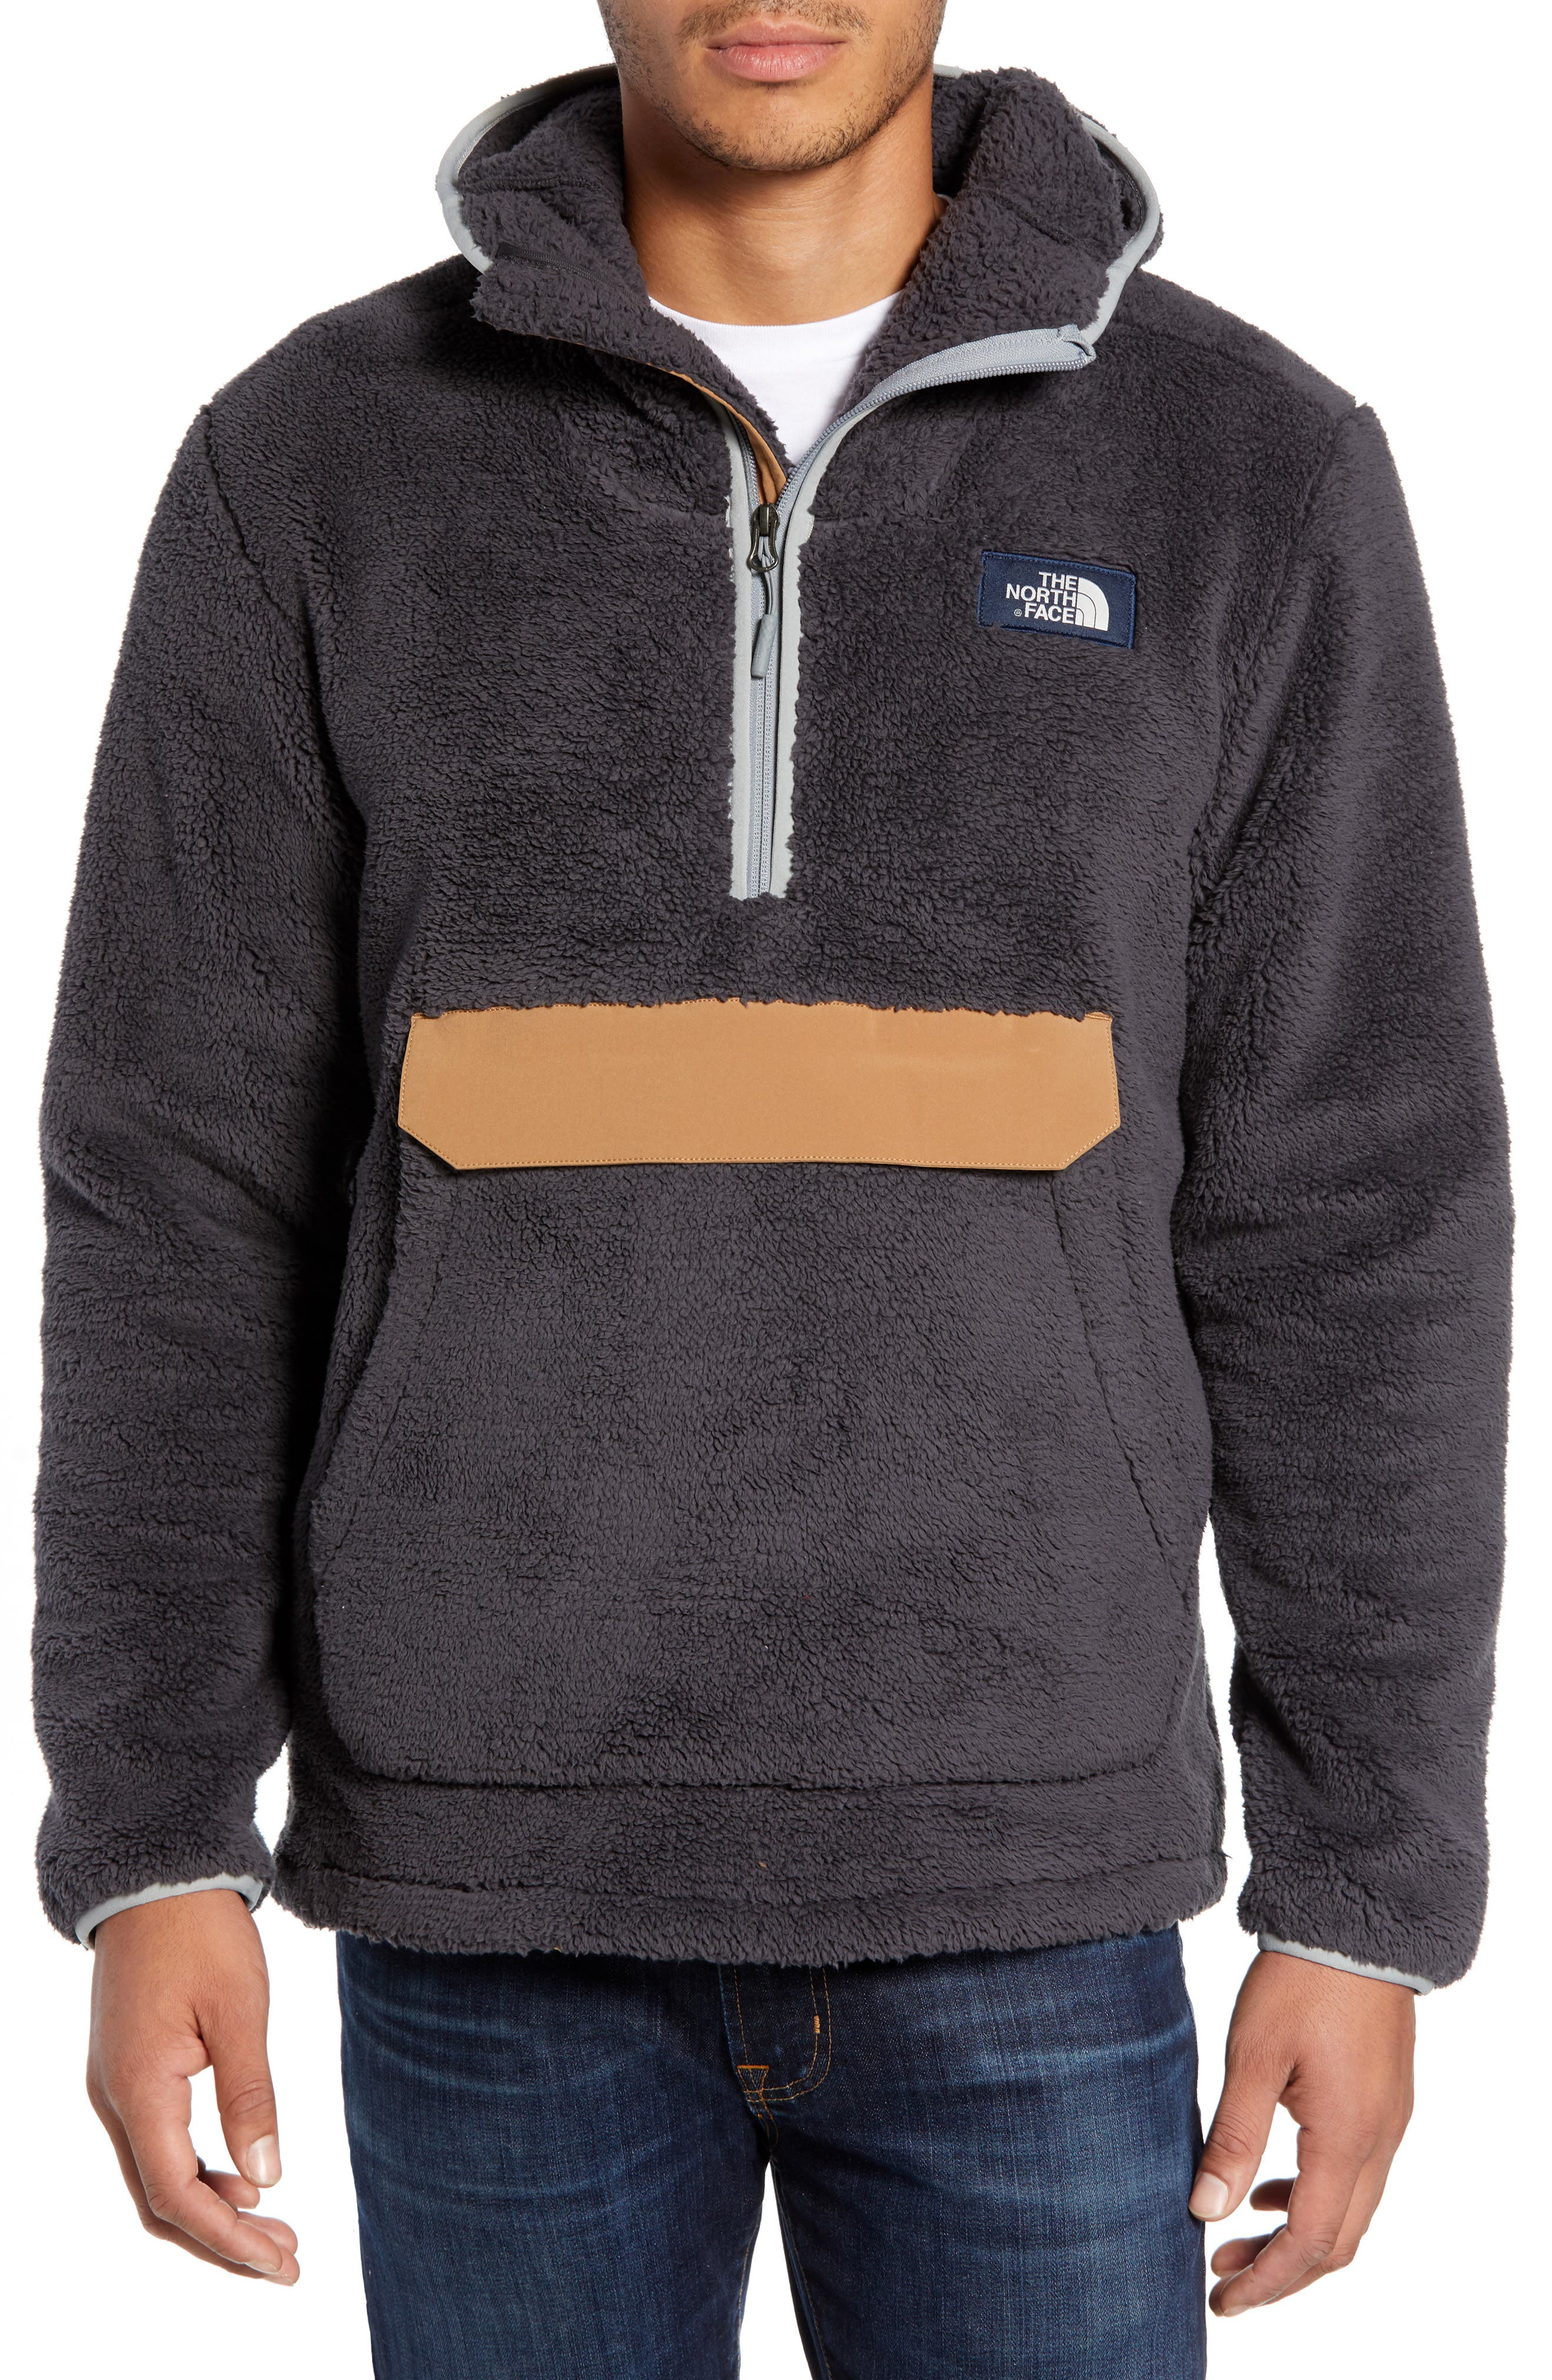 THE NORTH FACE Campshire Anorak Fleece Jacket, Main, color, 001